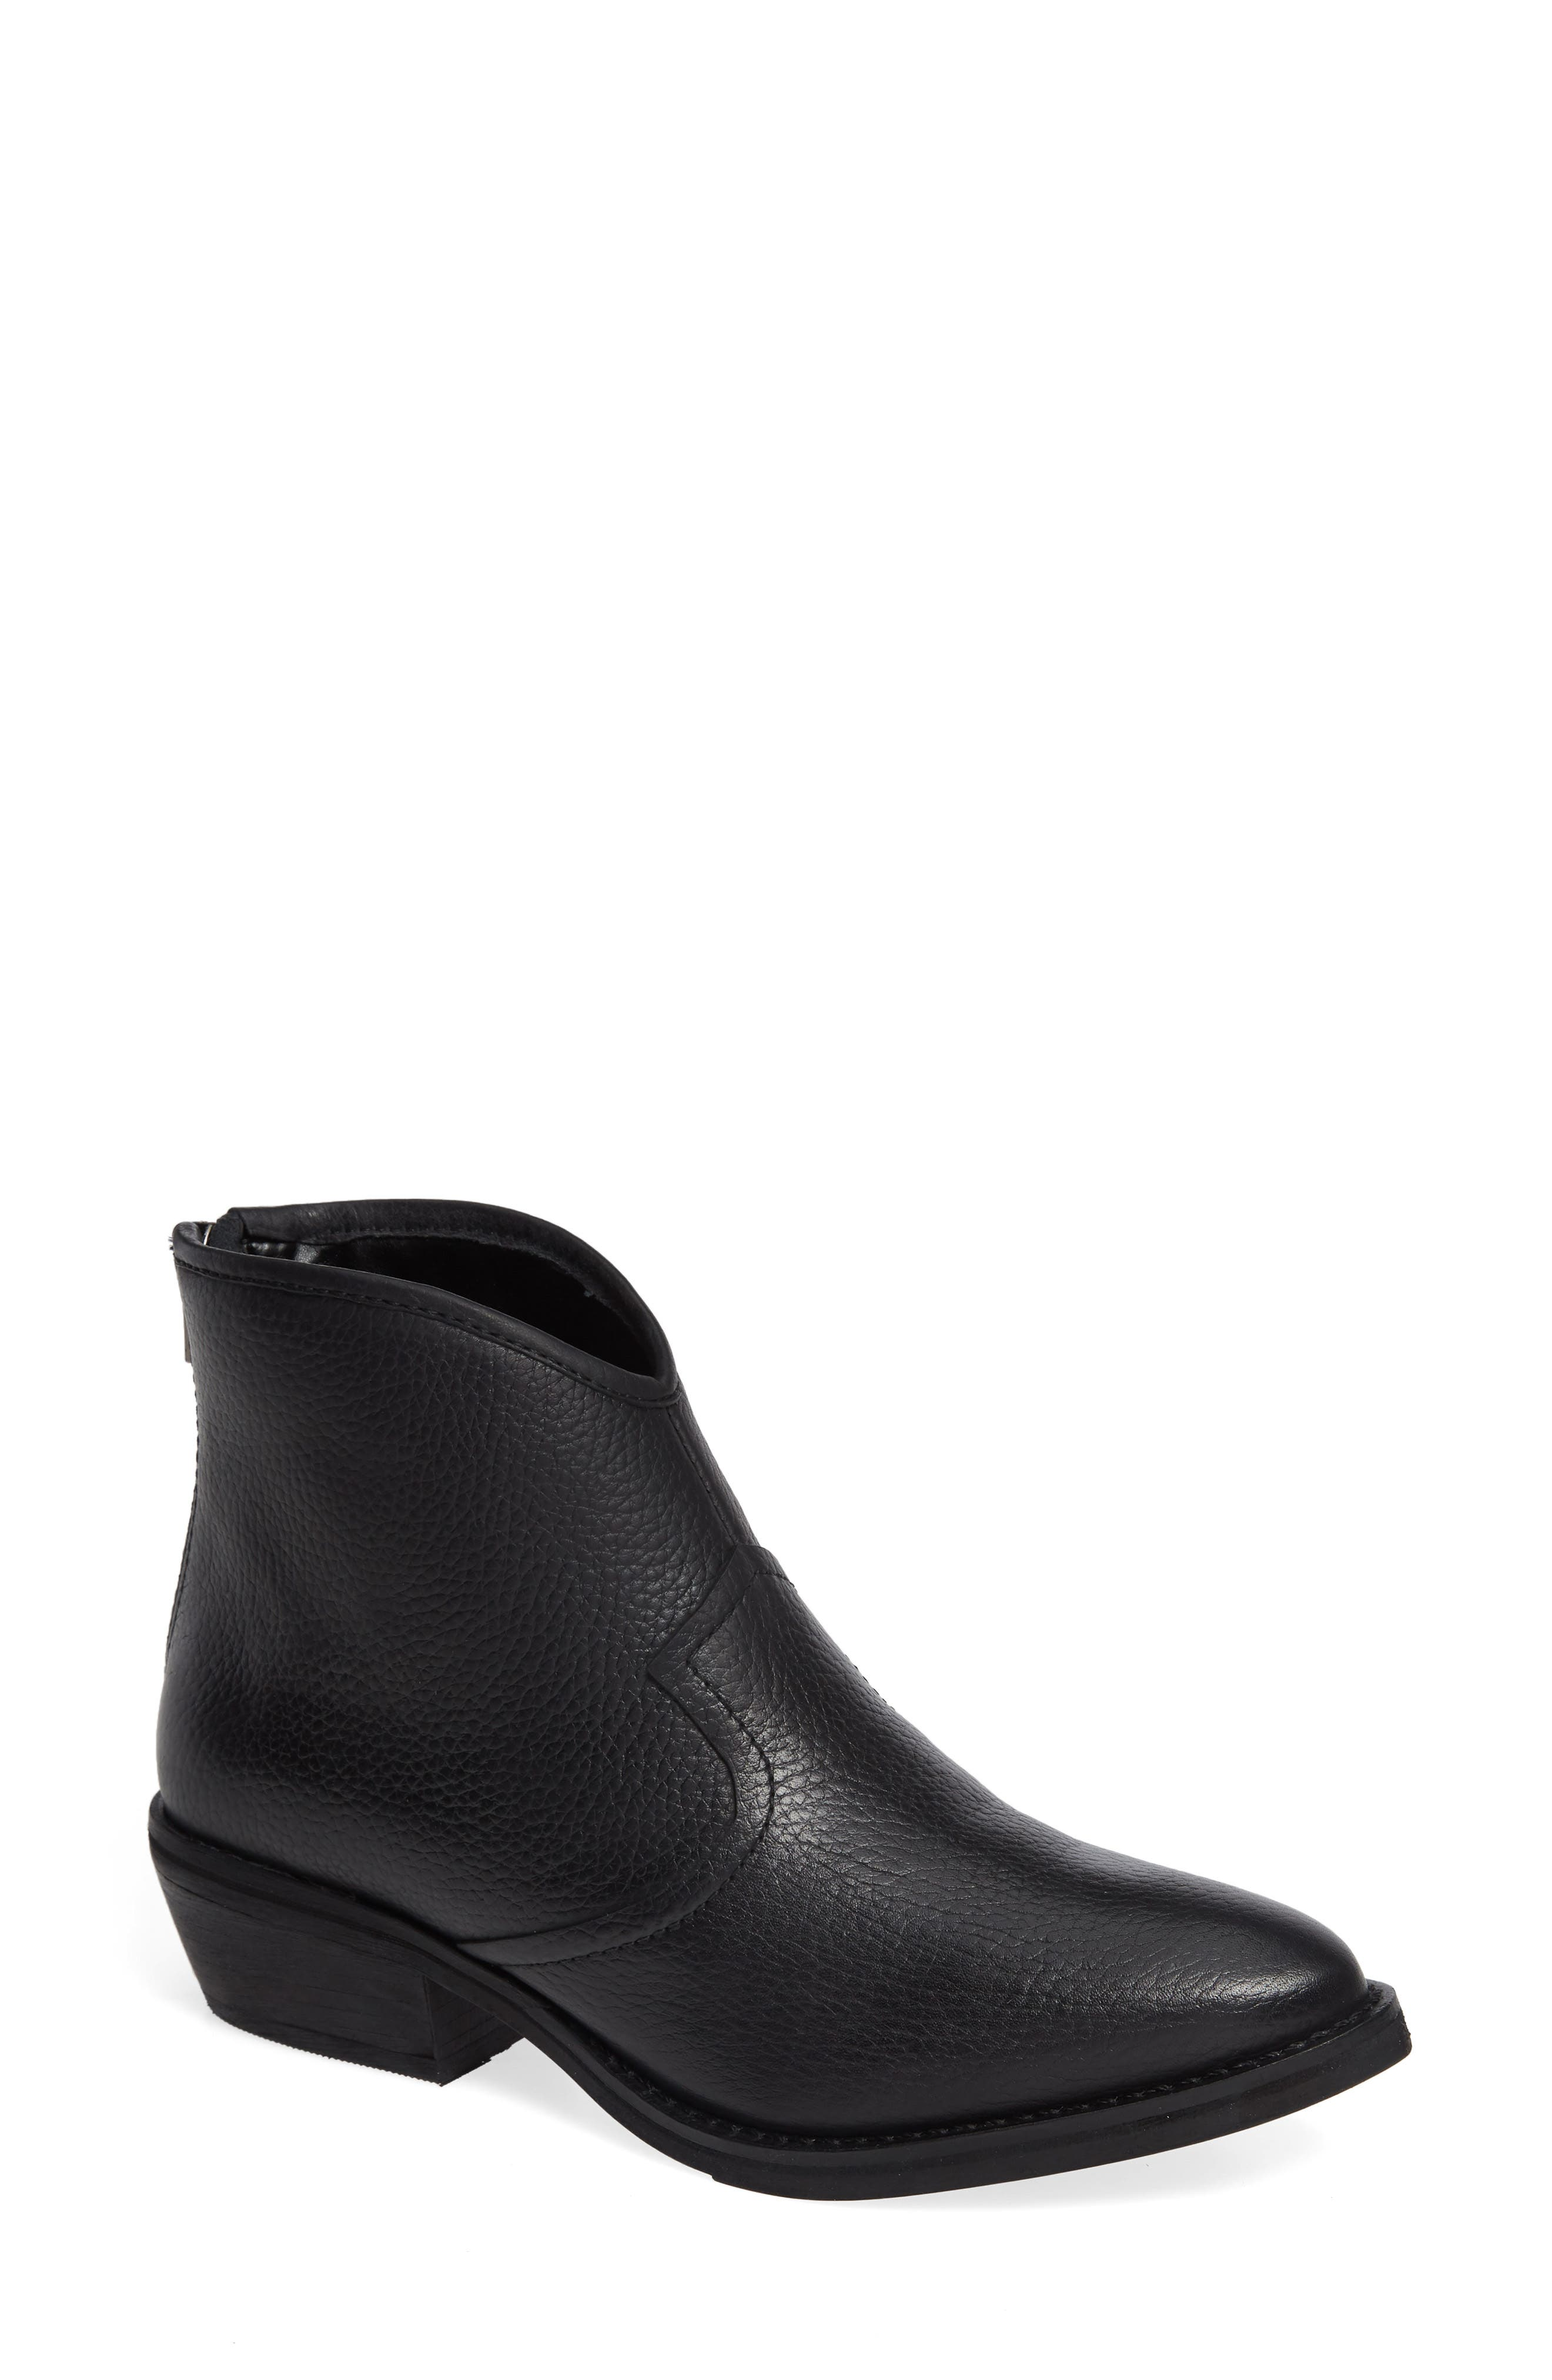 LUST FOR LIFE Patron Bootie in Black Leather